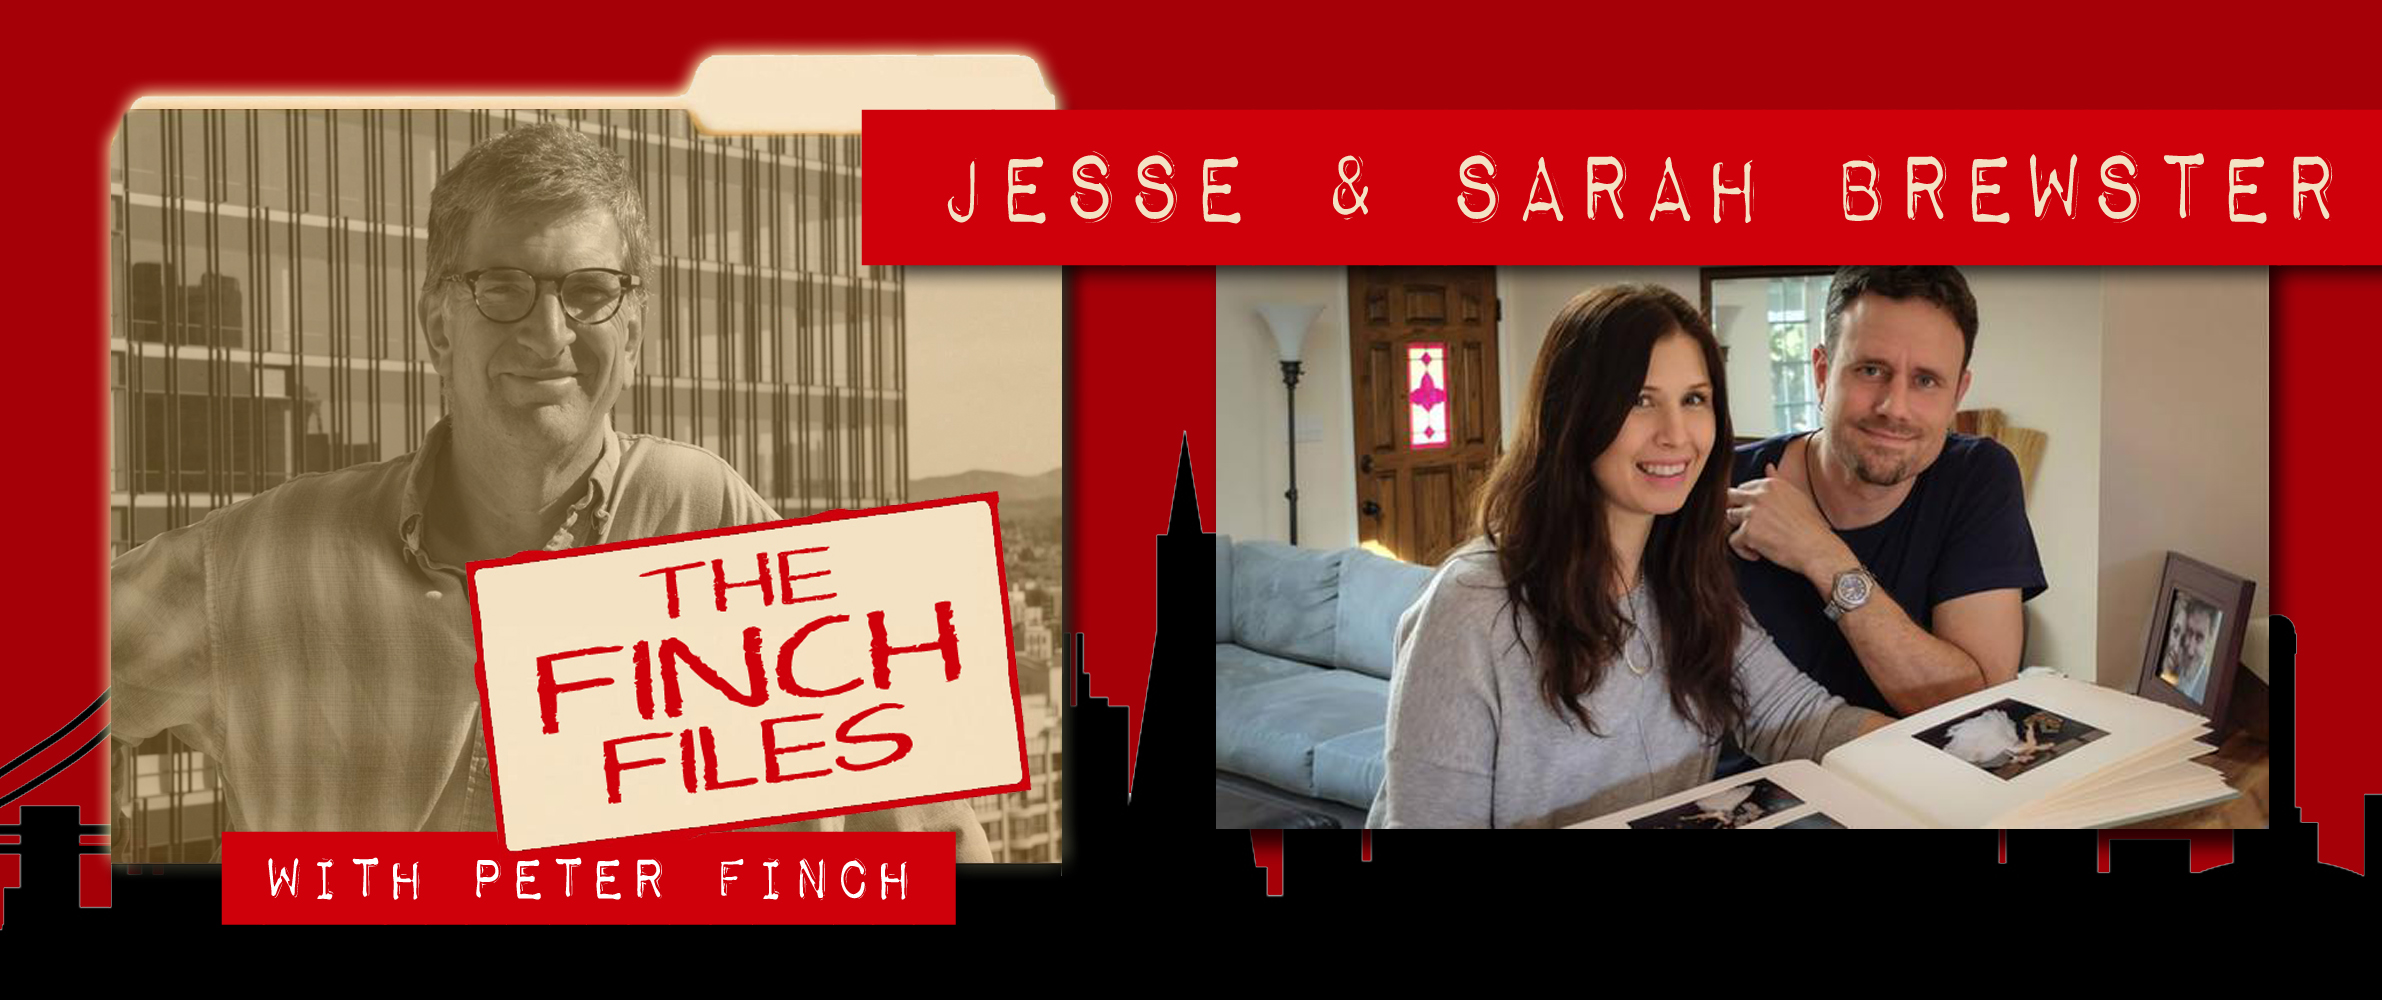 The Finch Files: Jesse and Sarah Brewster